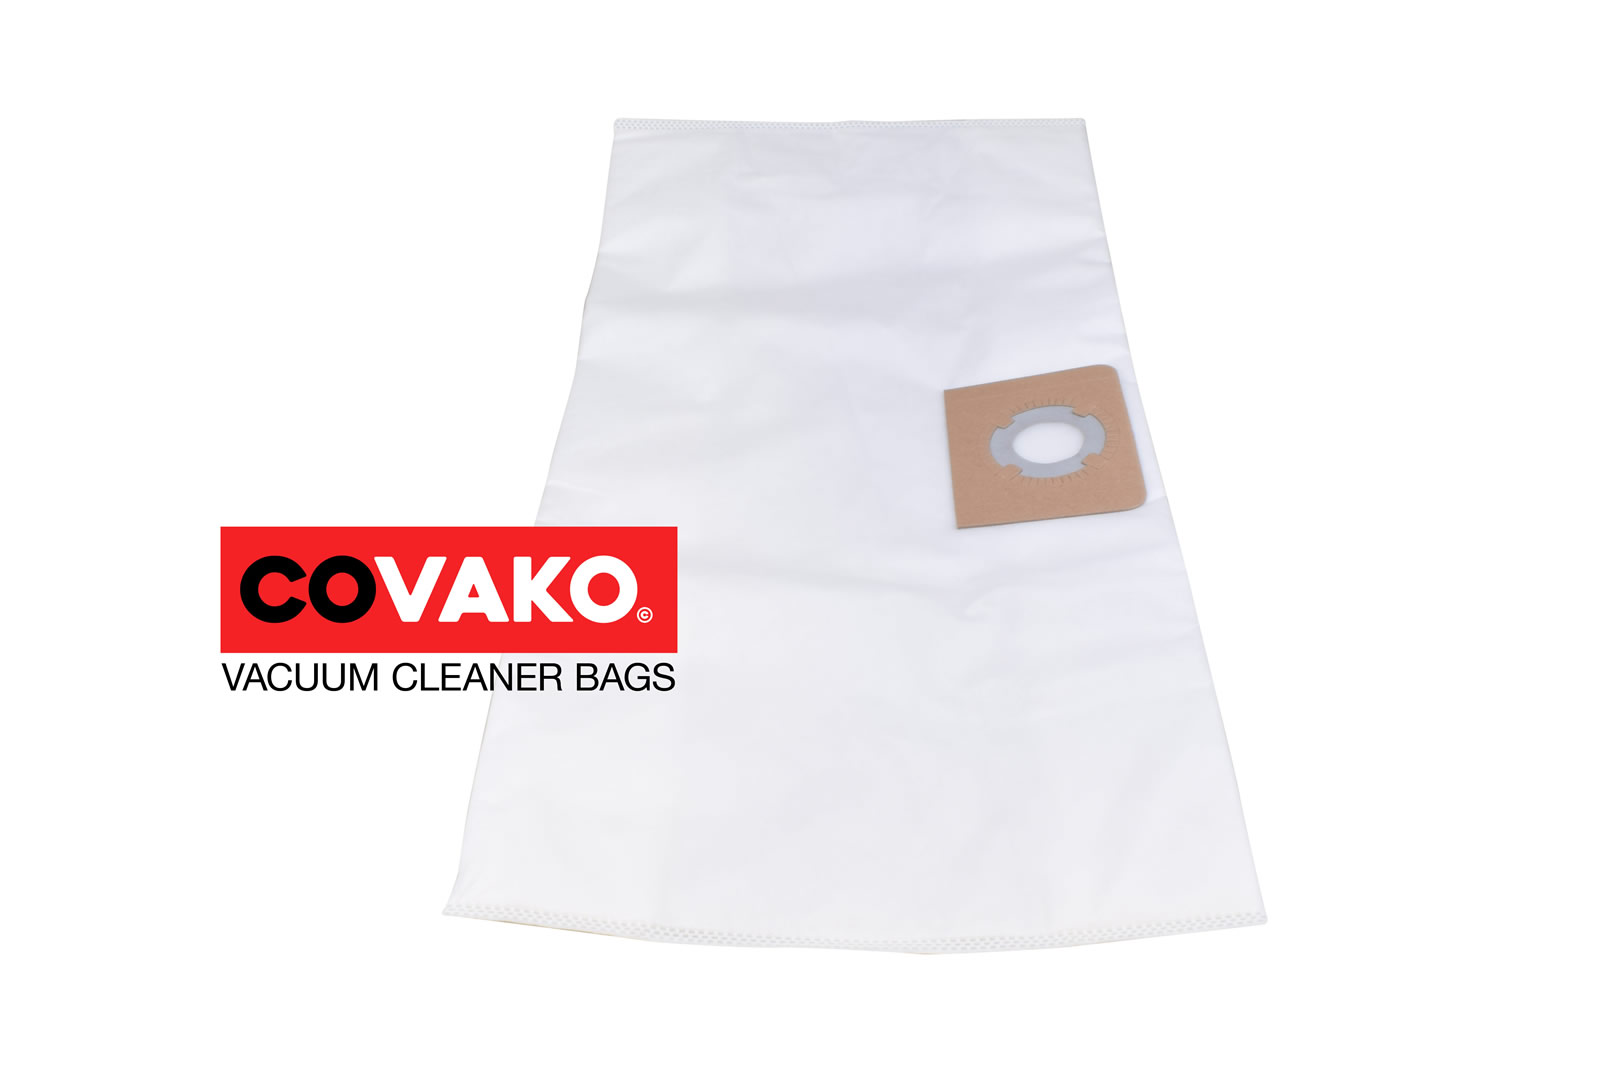 Lavor GB 32 / Synthesis - Lavor vacuum cleaner bags